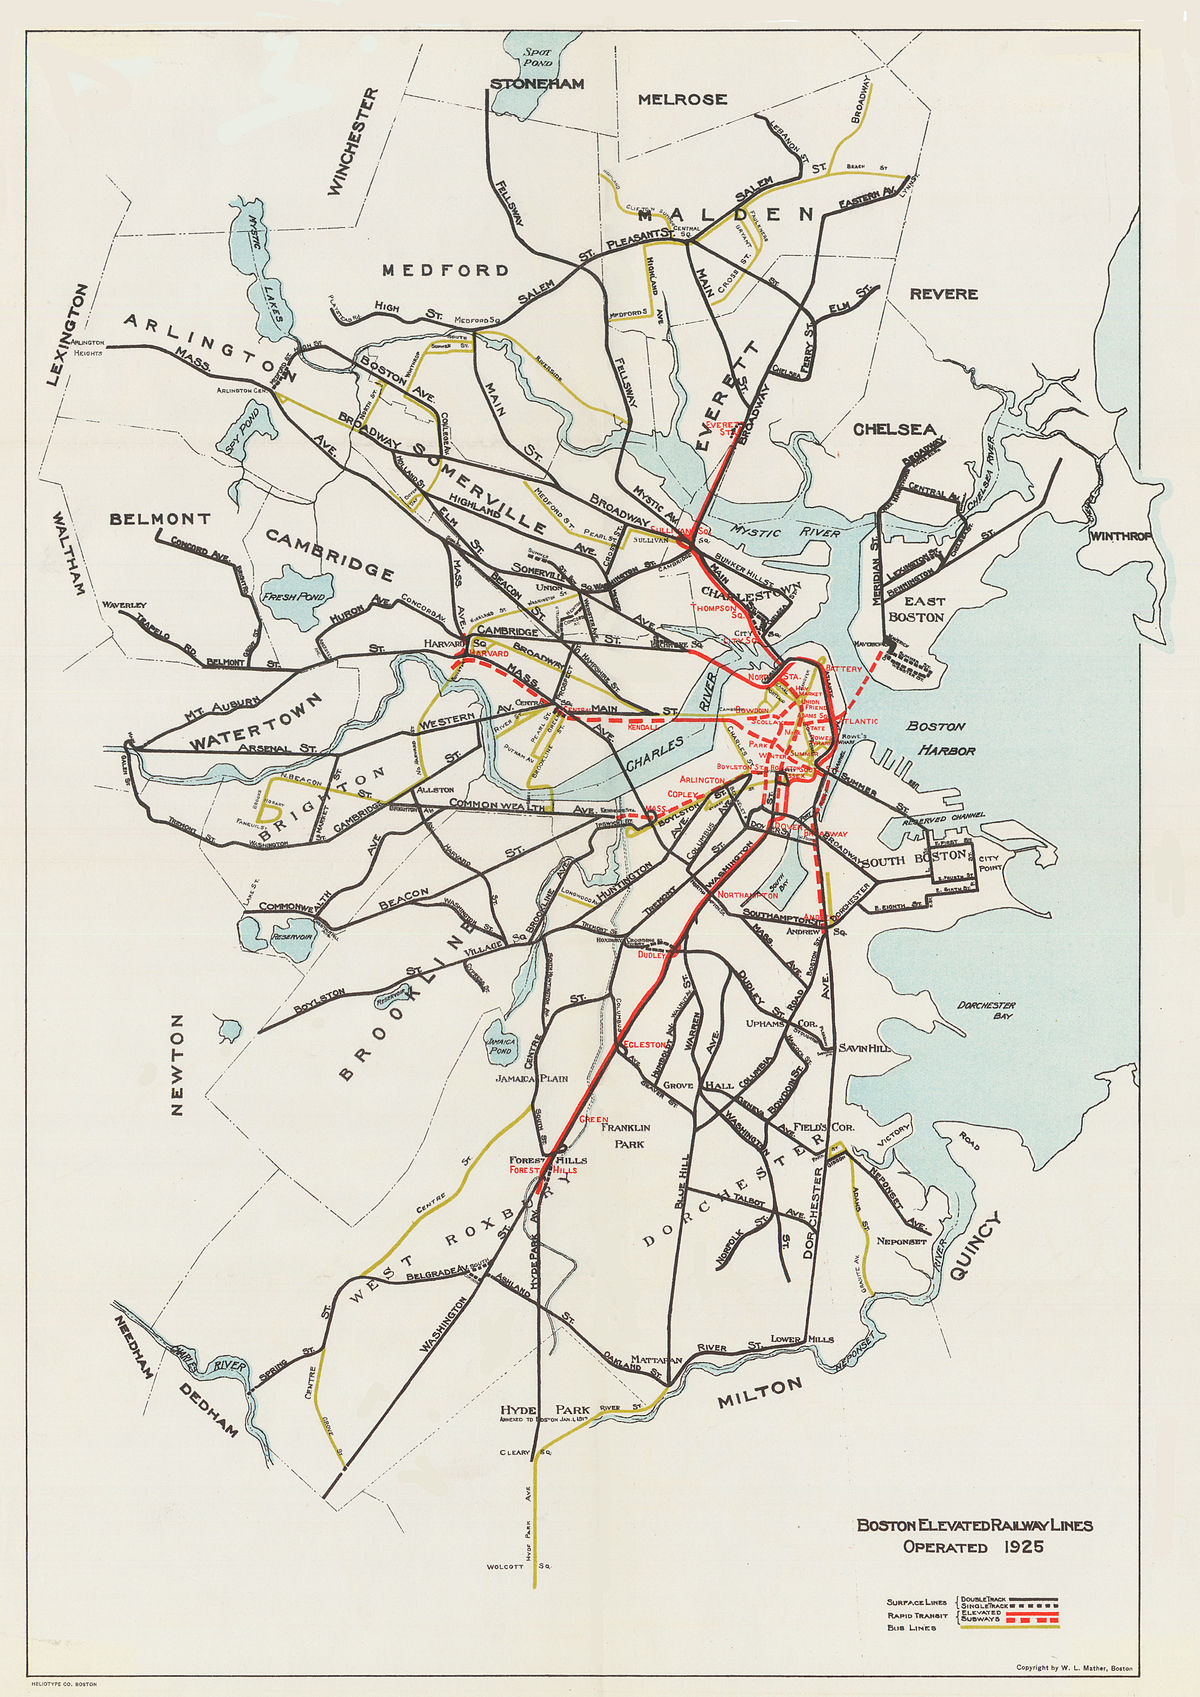 train in boston map Boston Elevated Railway Wikipedia train in boston map